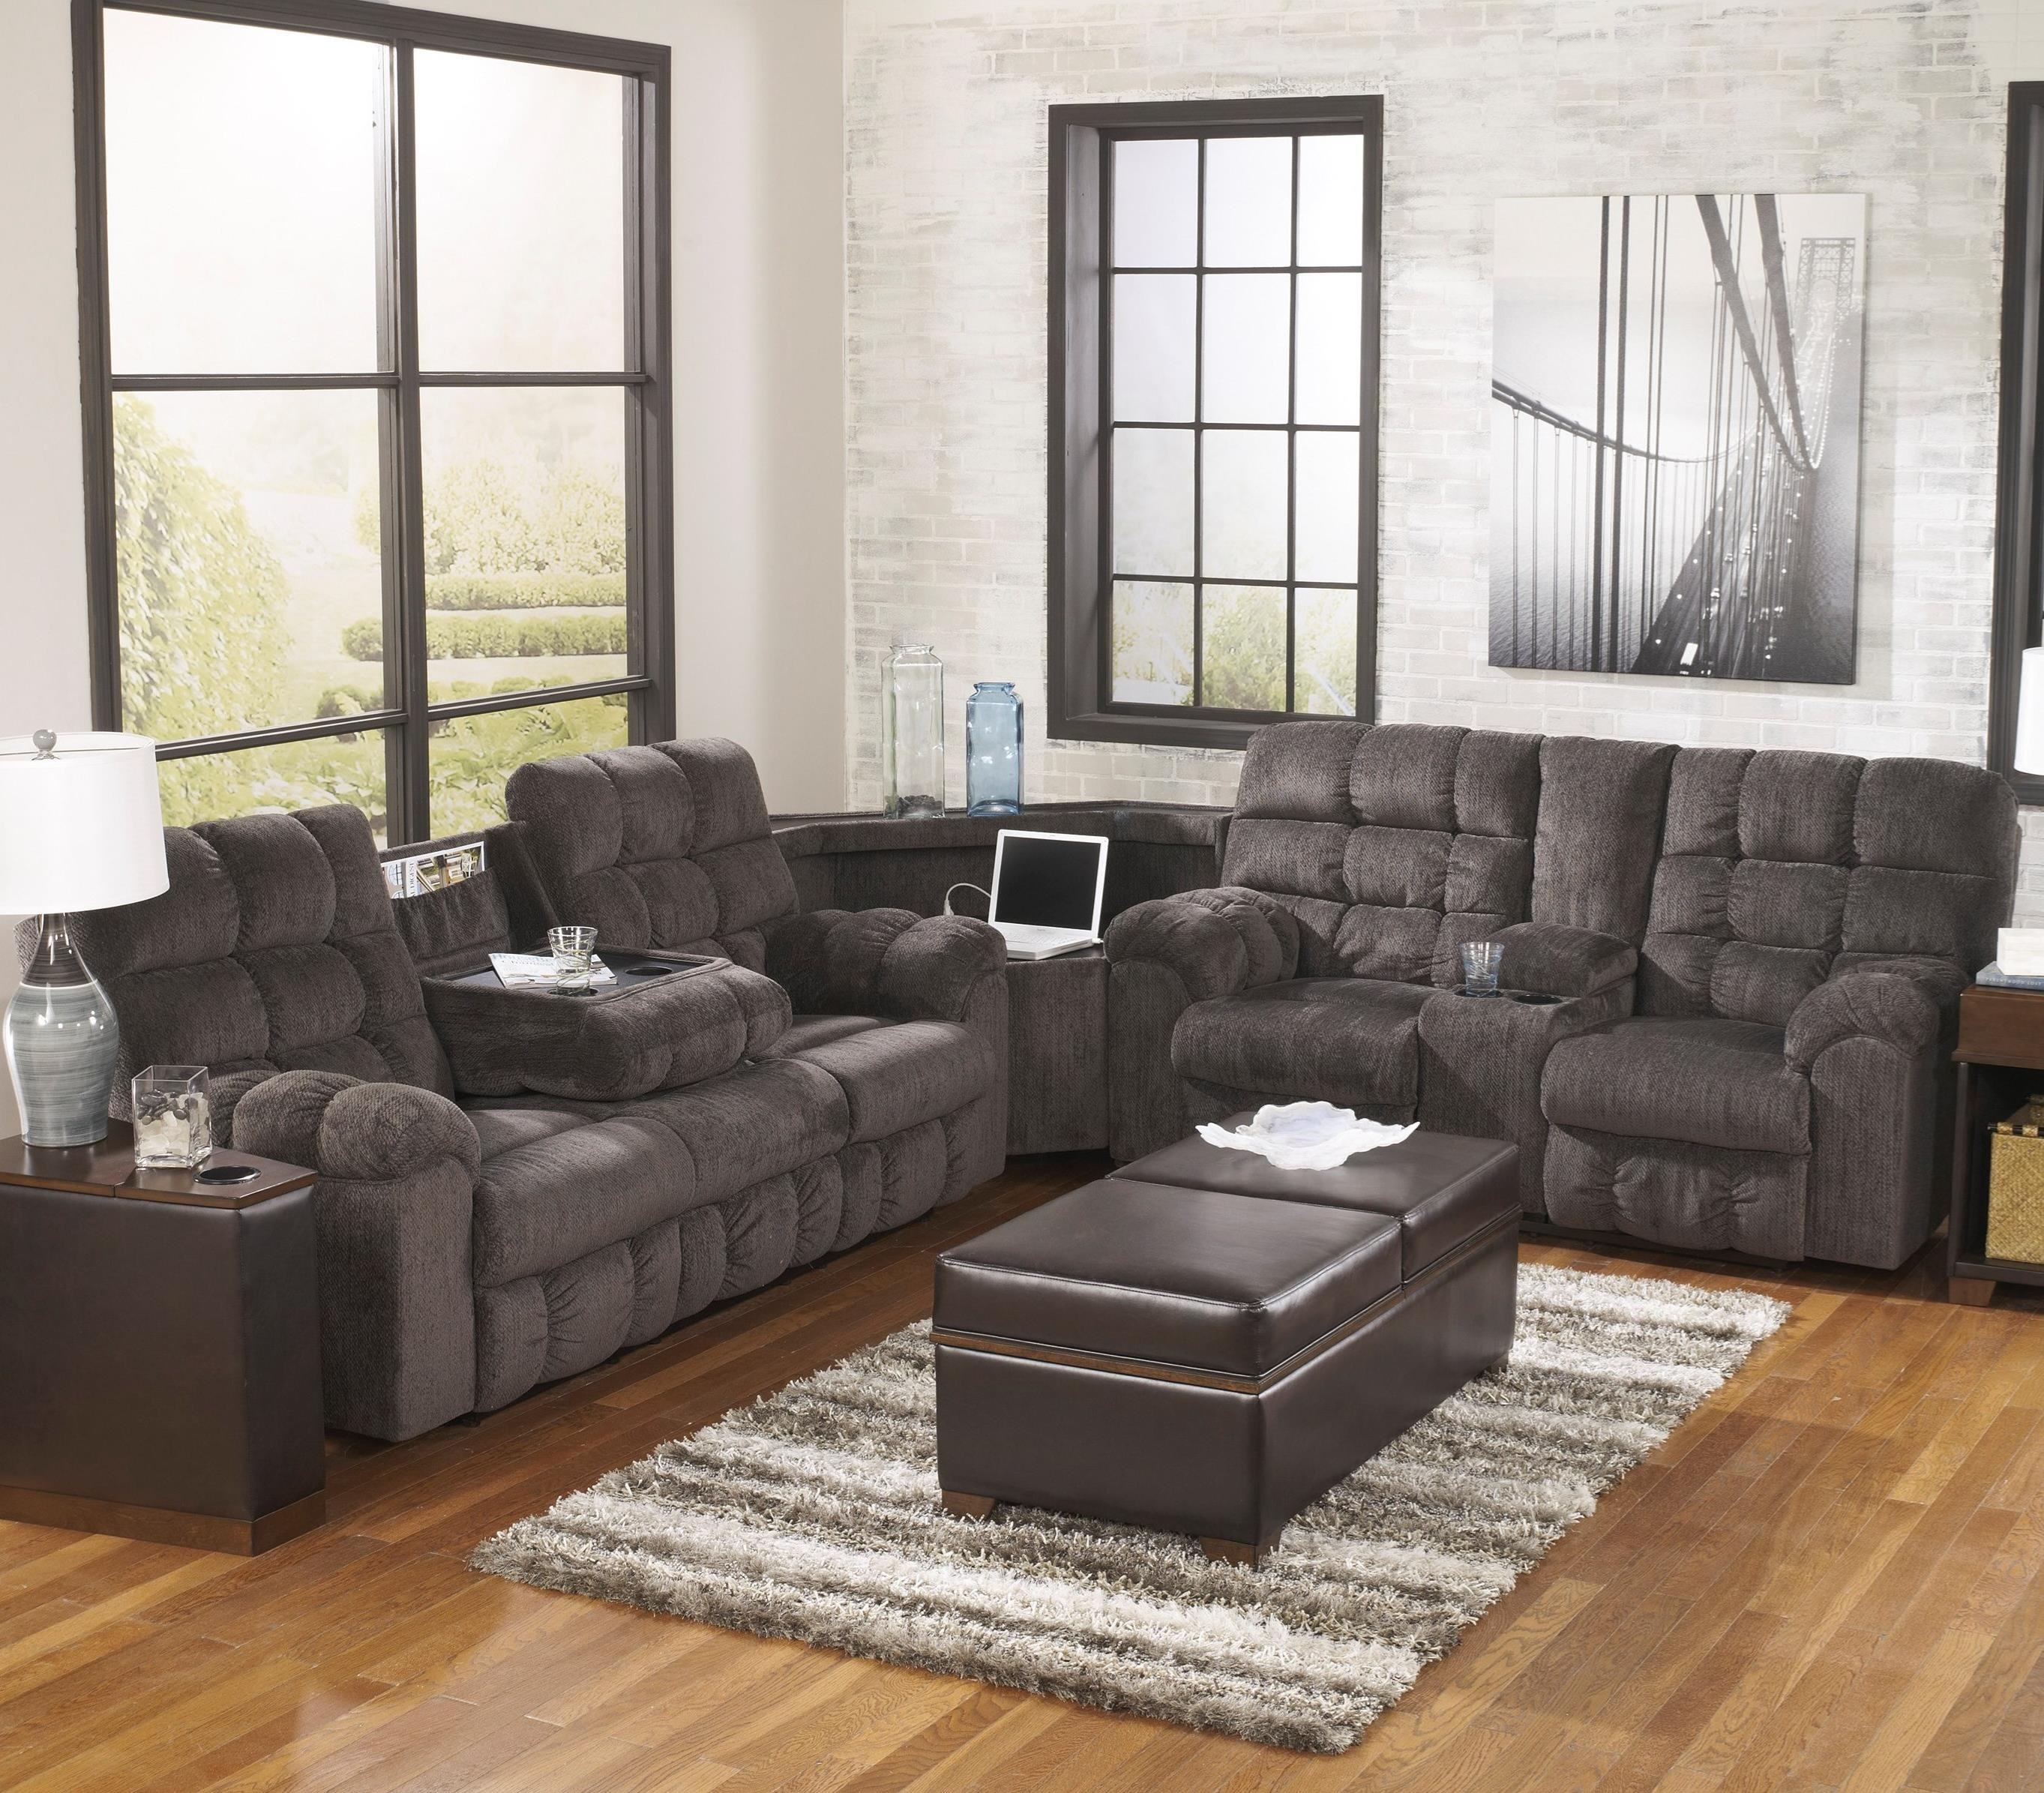 seat storage skiftebo bedroom chaise pull and agreeable canada wstorage with sectionals dark recliner small sectional style sleeper couch sofa leather theatre home out friheten